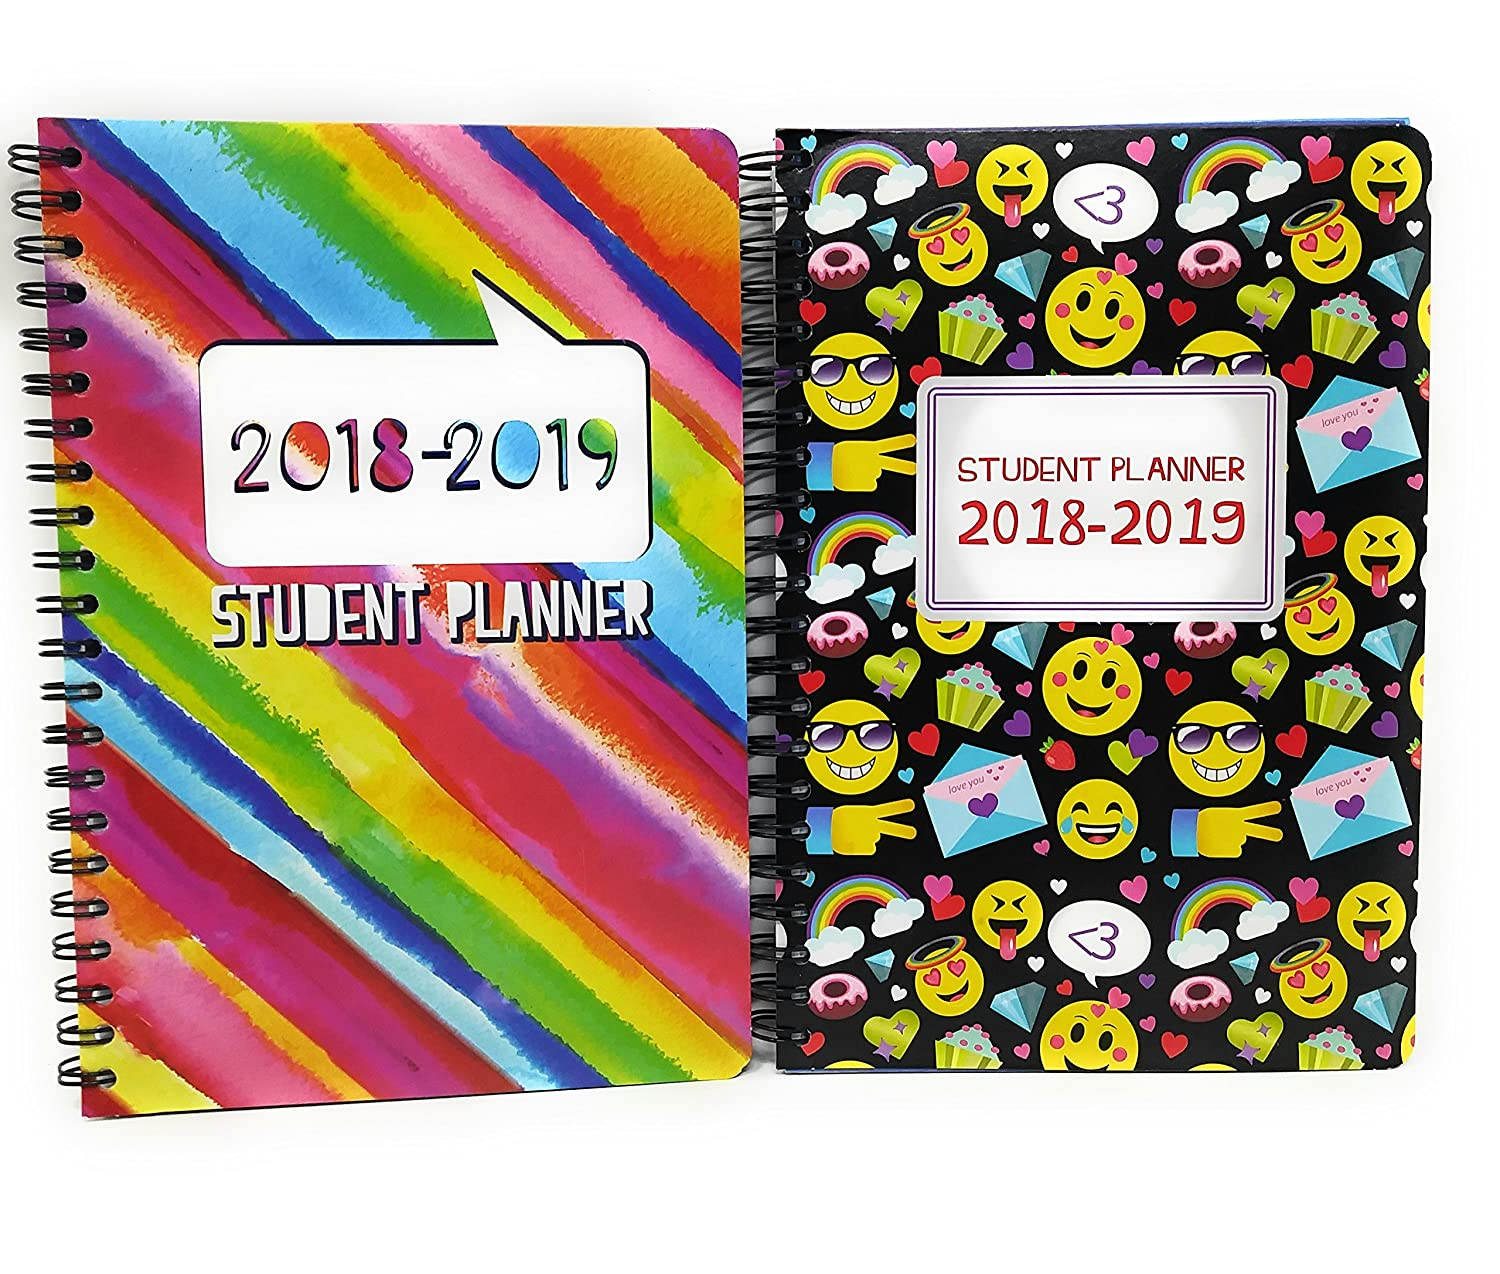 Back to School Student Elementary Middle High 2018 School Classroom Student Academic Year Daily Planner August 2018 Through July 2019 Planner (2) Emoji Rainbow